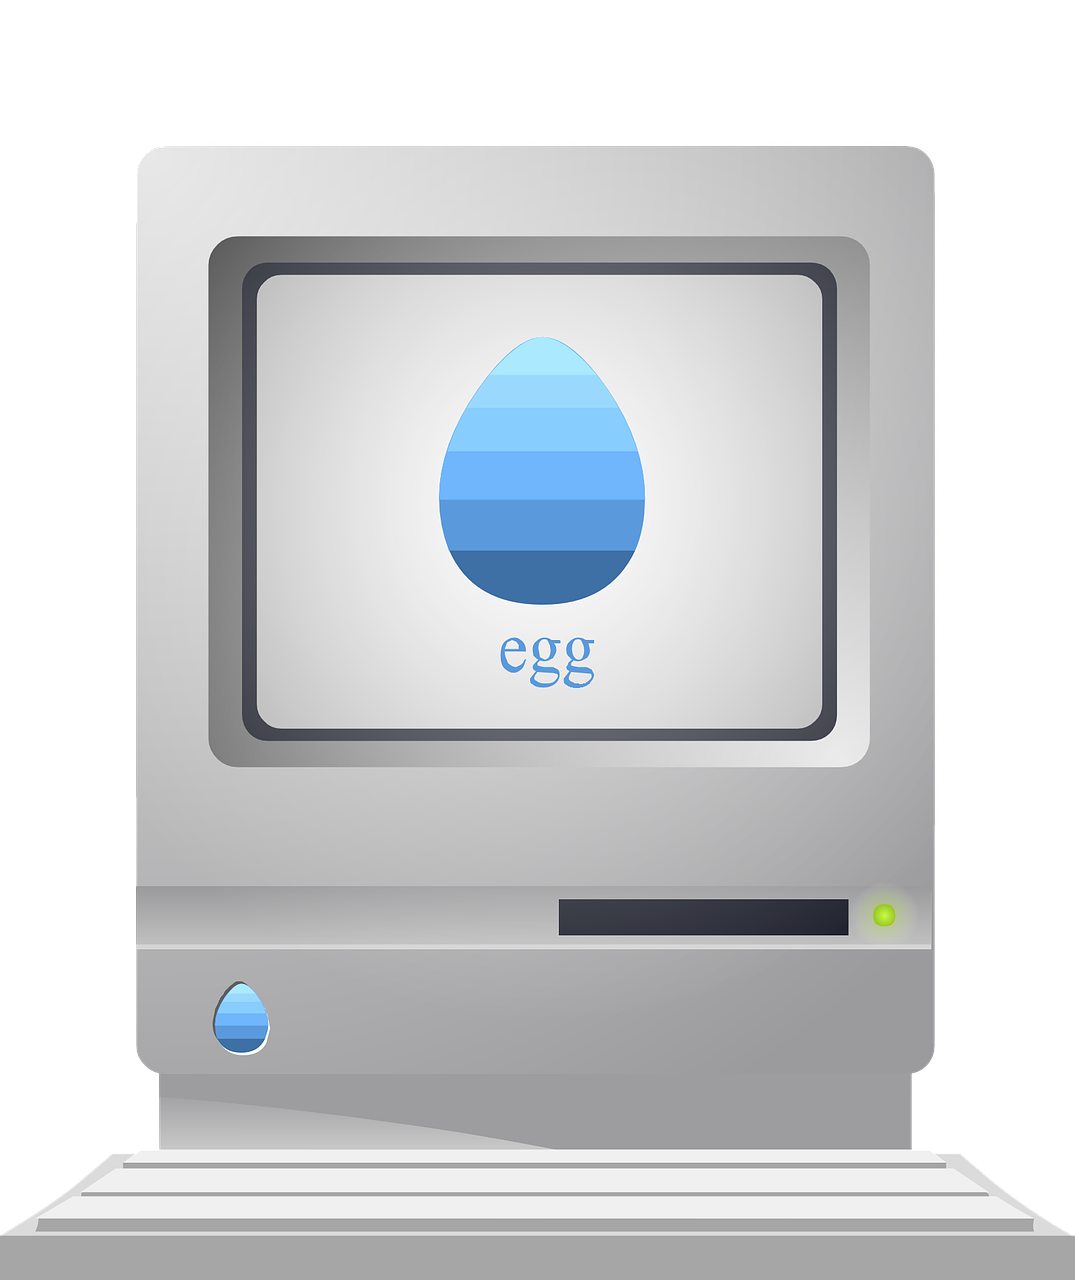 vector black and white Vector computer technology. Retro desktop macintosh free